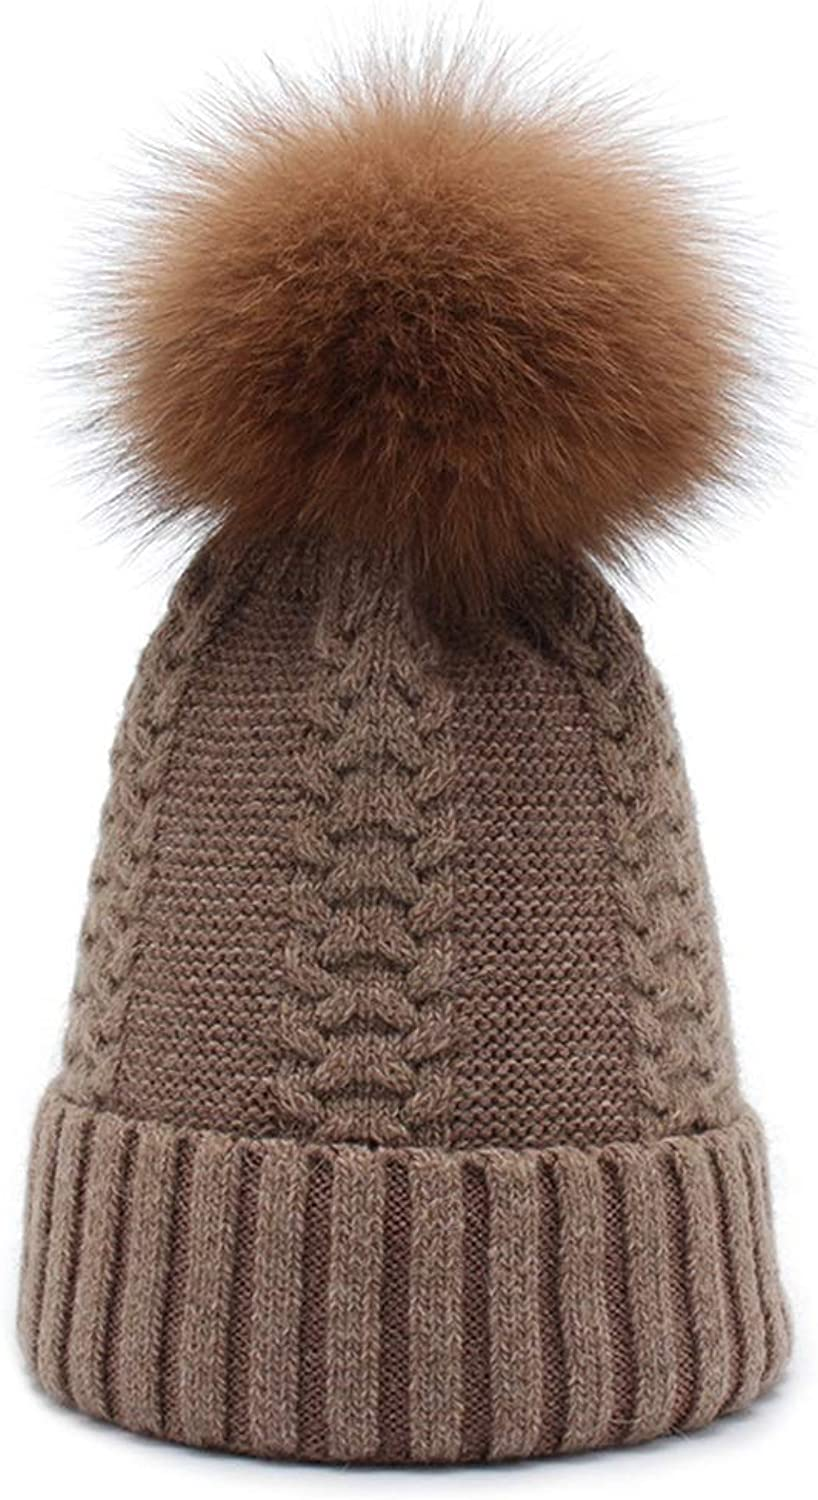 Knit Hat Women's Winter Warmth Thickening with Ball Care Ear Jacquard (color   Brown)